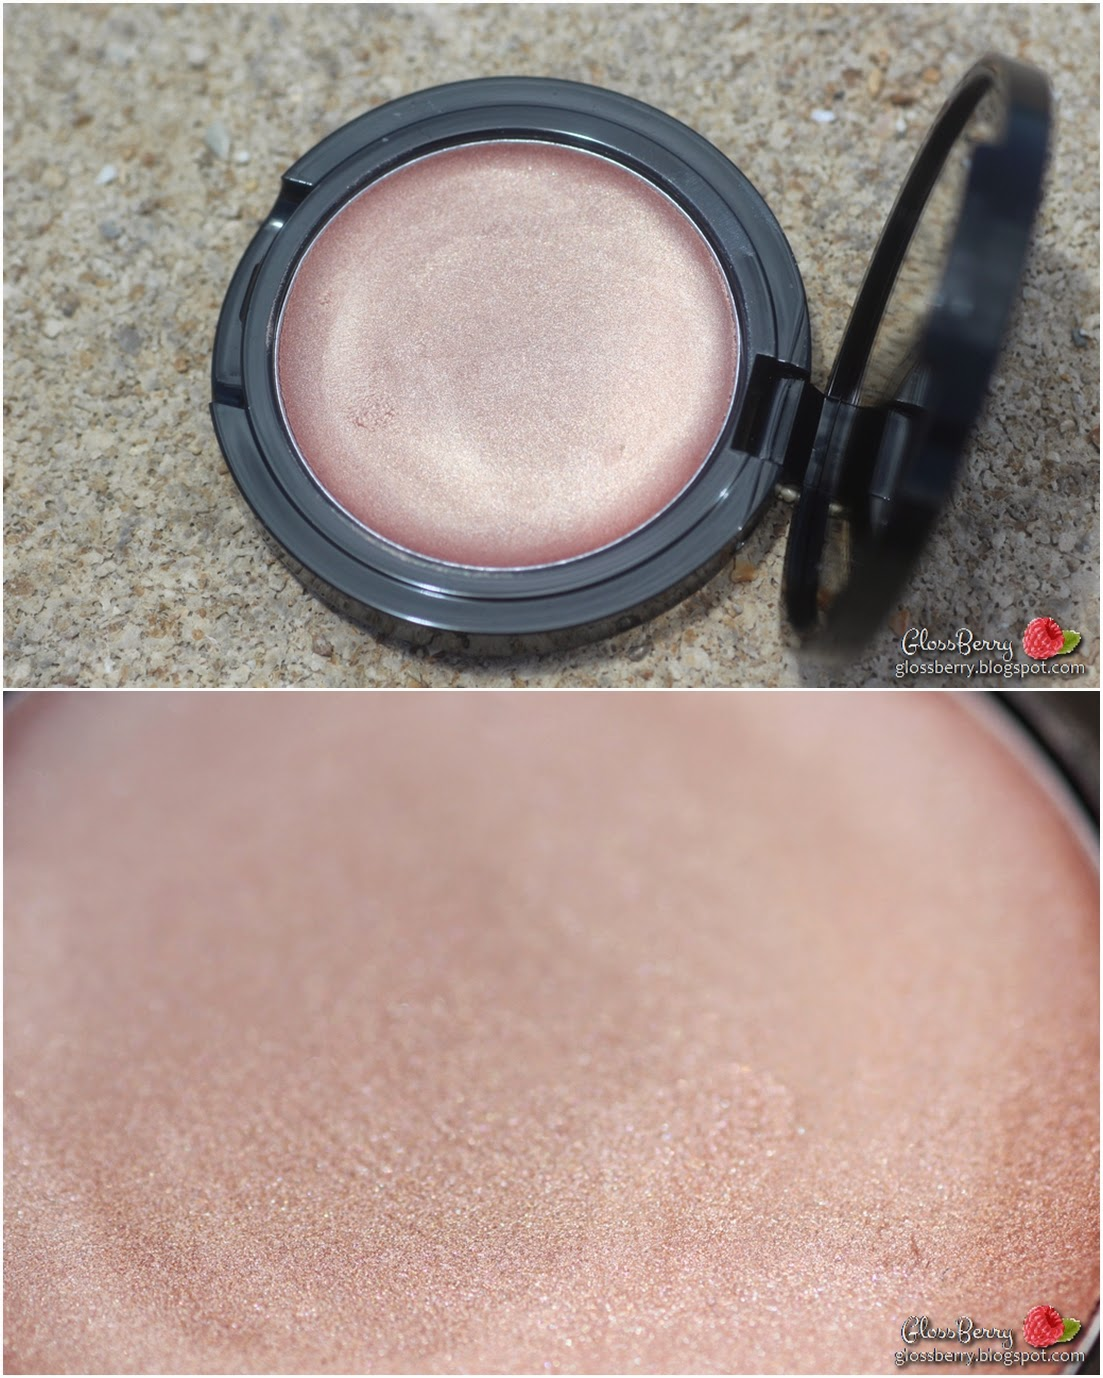 edward bess afterglow highlighter seduction מאיר היילייטר בס